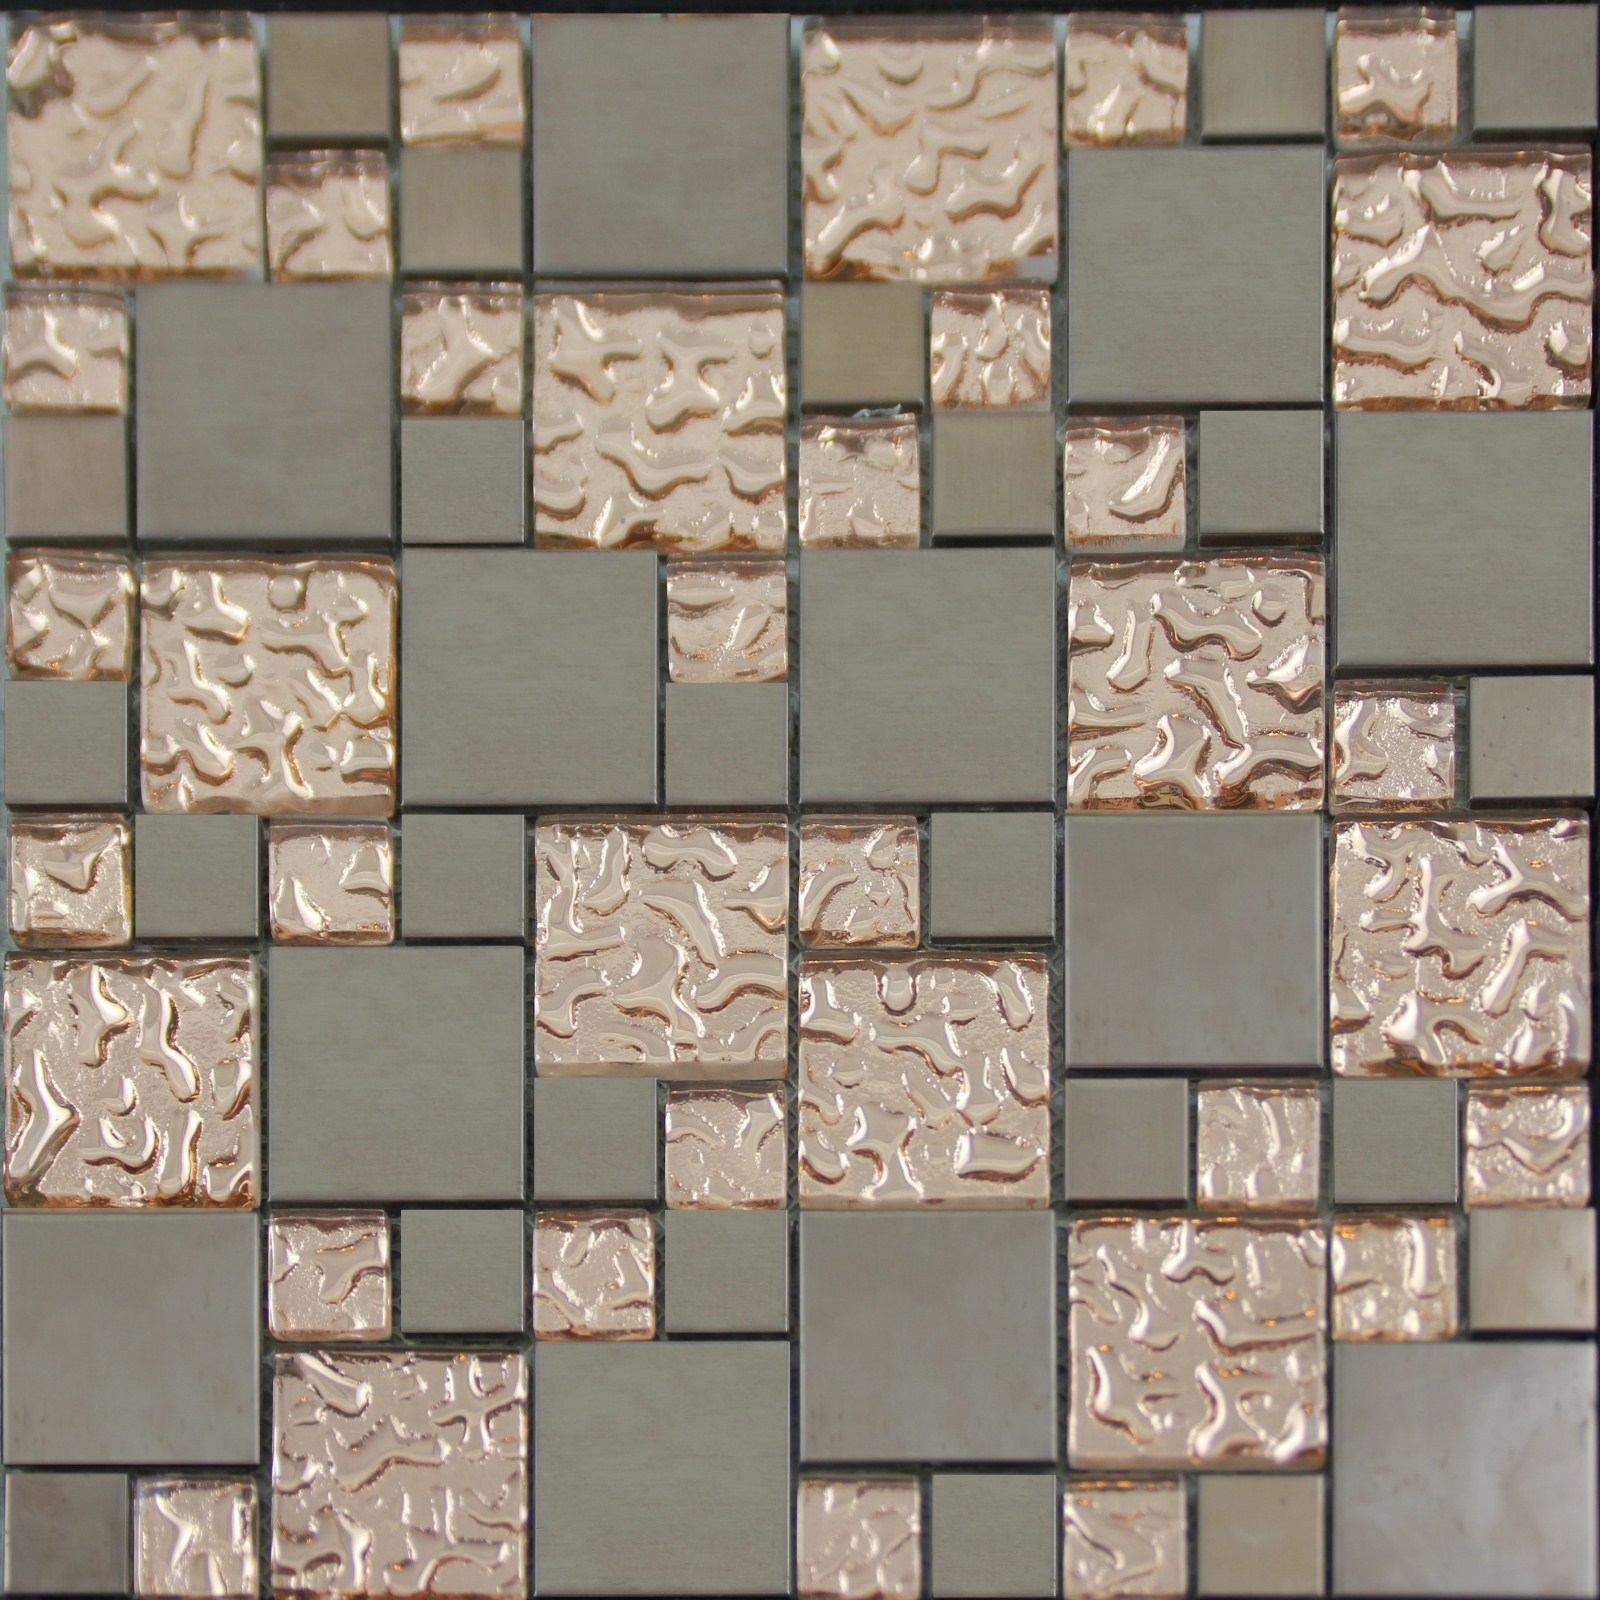 mosaic tile designs plated ceramic wall tiles wall kitchen backsplash